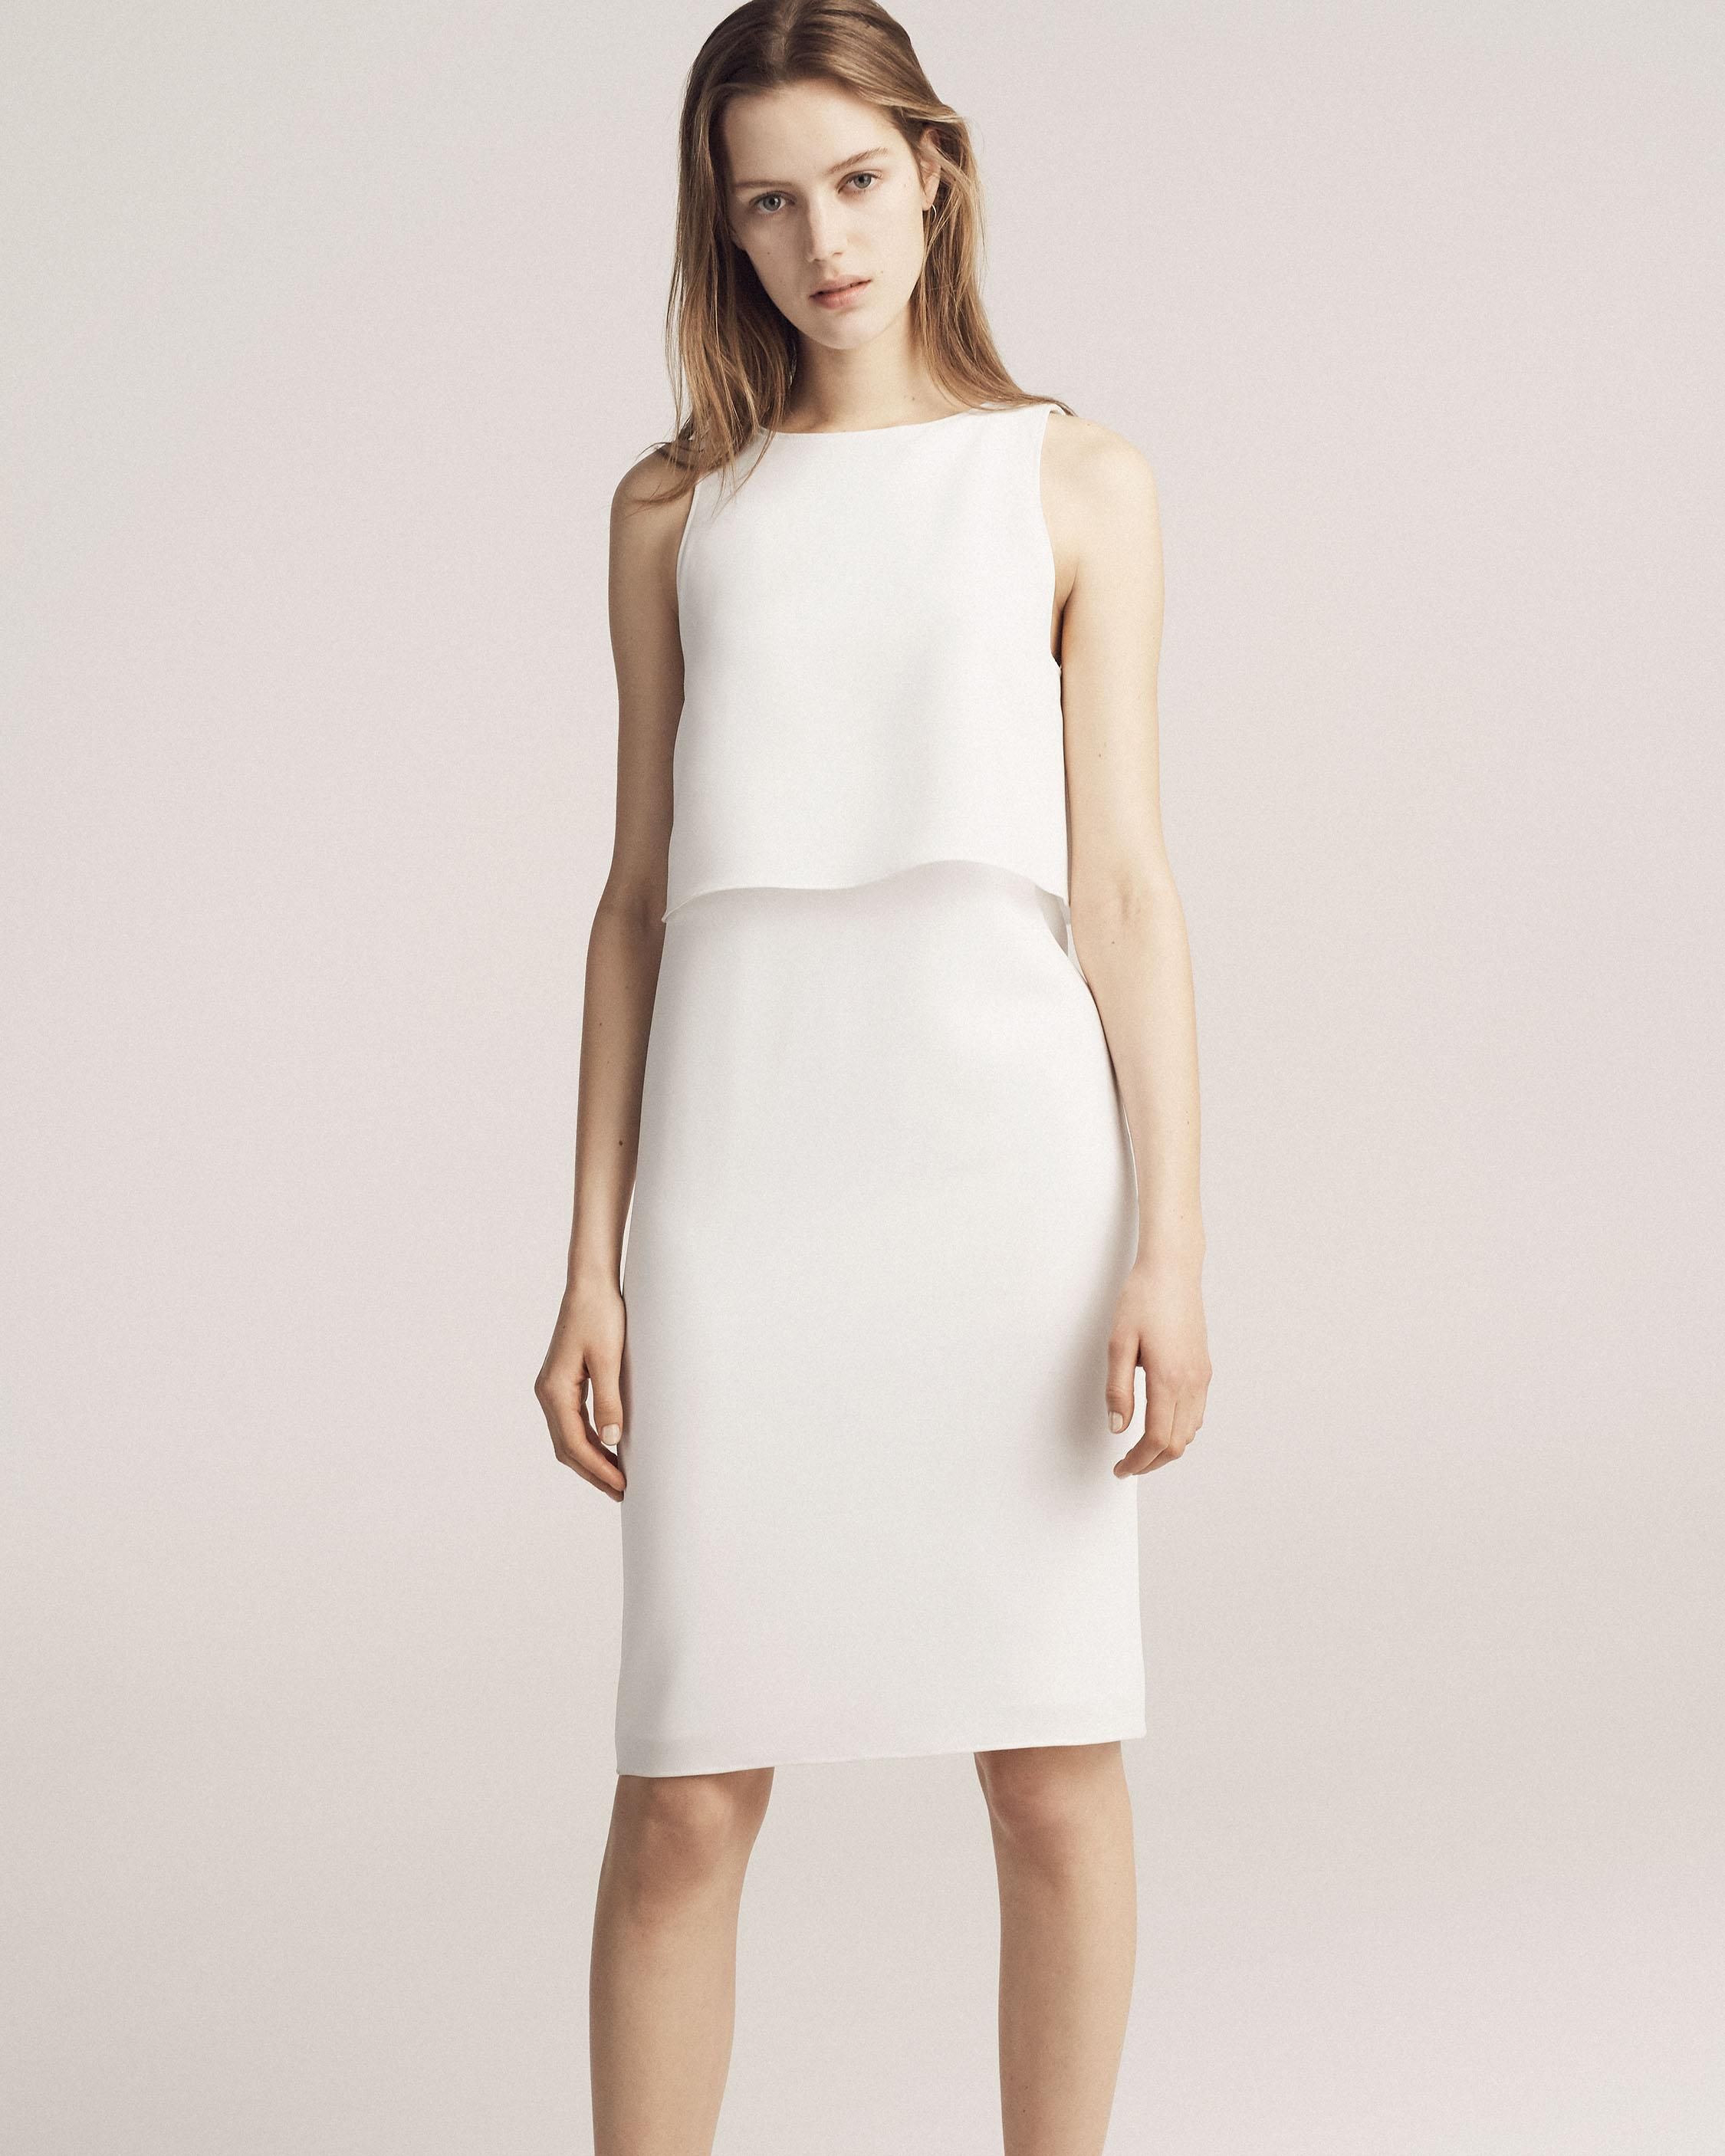 Cheap The Cheapest Explore Rag & Bone Leather Knee-Length Dress Amazing Price 100% Guaranteed For Sale JBScMx